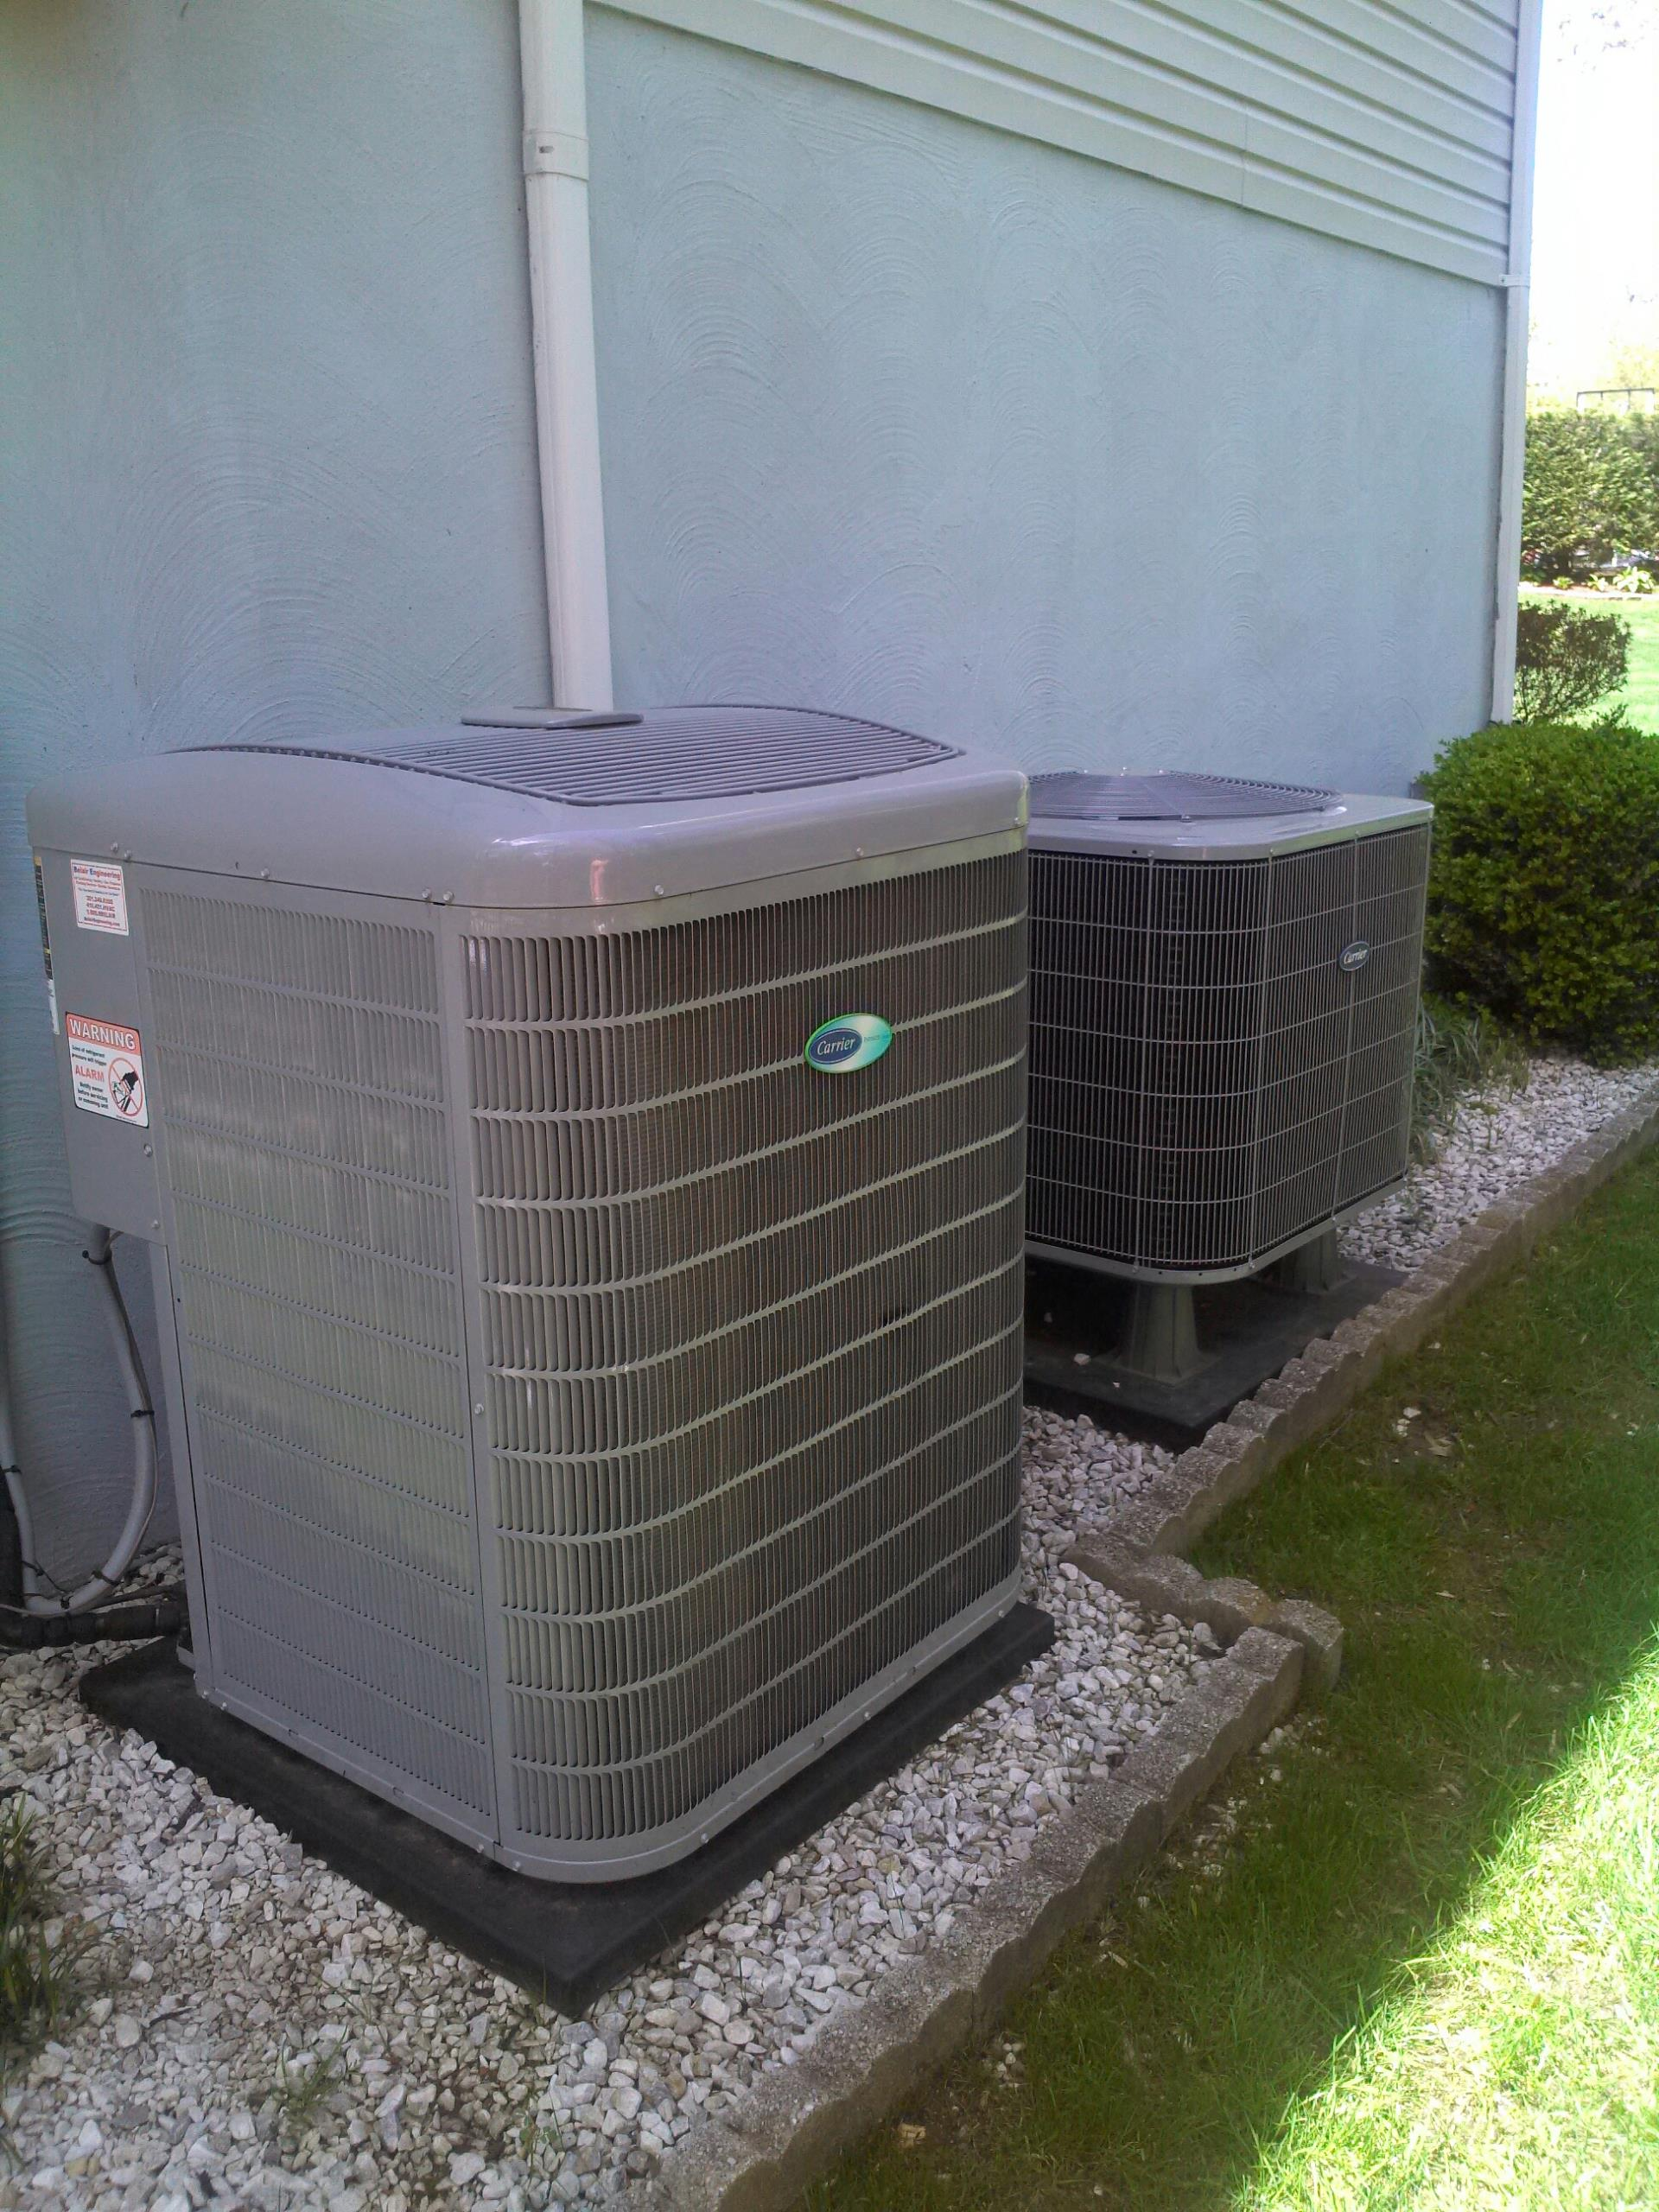 Crofton, MD - Crofton Maryland Carrier heat pump ac air conditioner & cooling system maintenance repair service call.